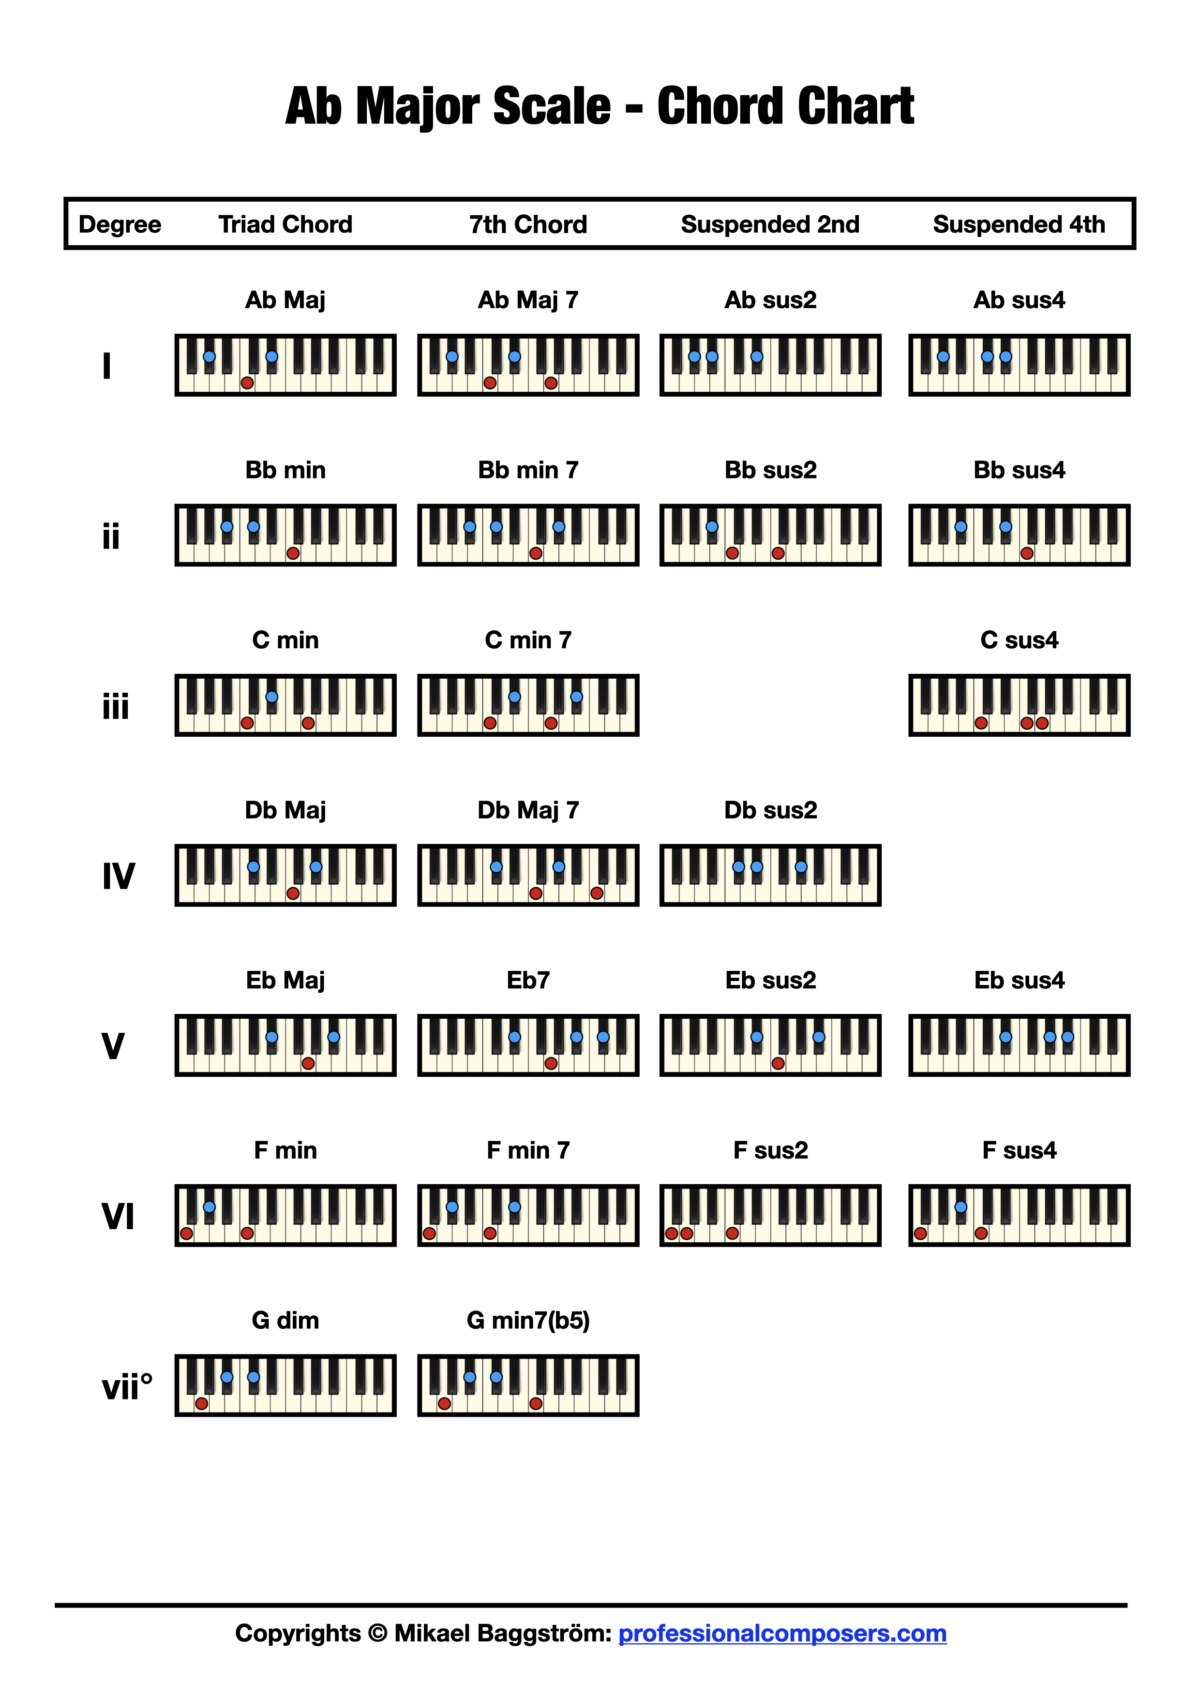 Chord Chart - Ab Major Scale